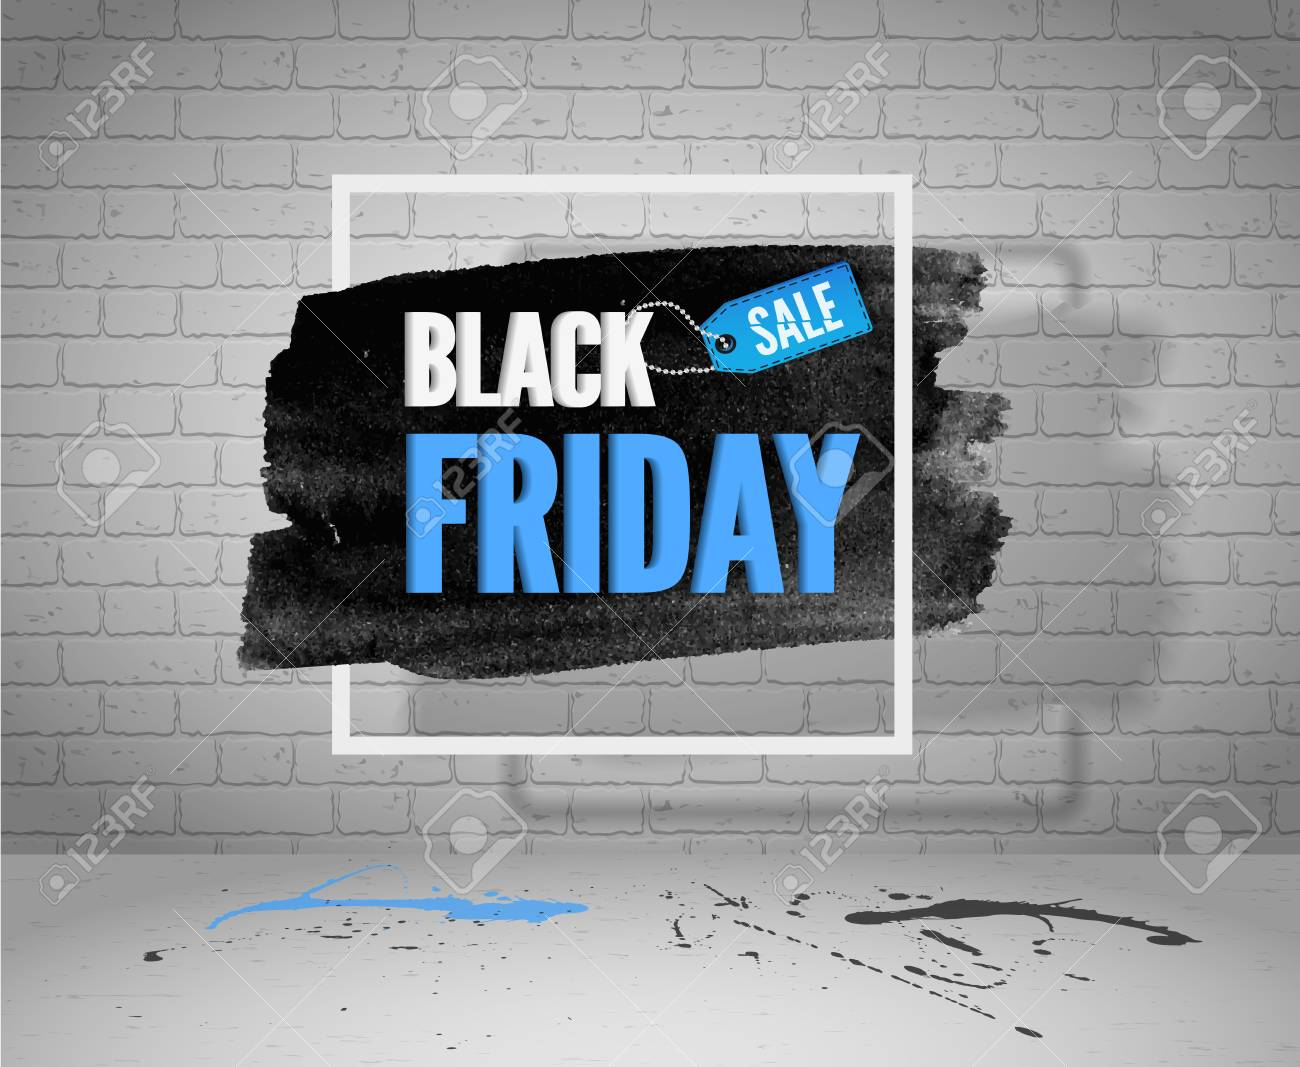 Black Friday sale vector grunge banner for web or advertisement. Watercolor in frame with a shopping tag, blue and black splashes on concrete floor and white brick background - 120060386